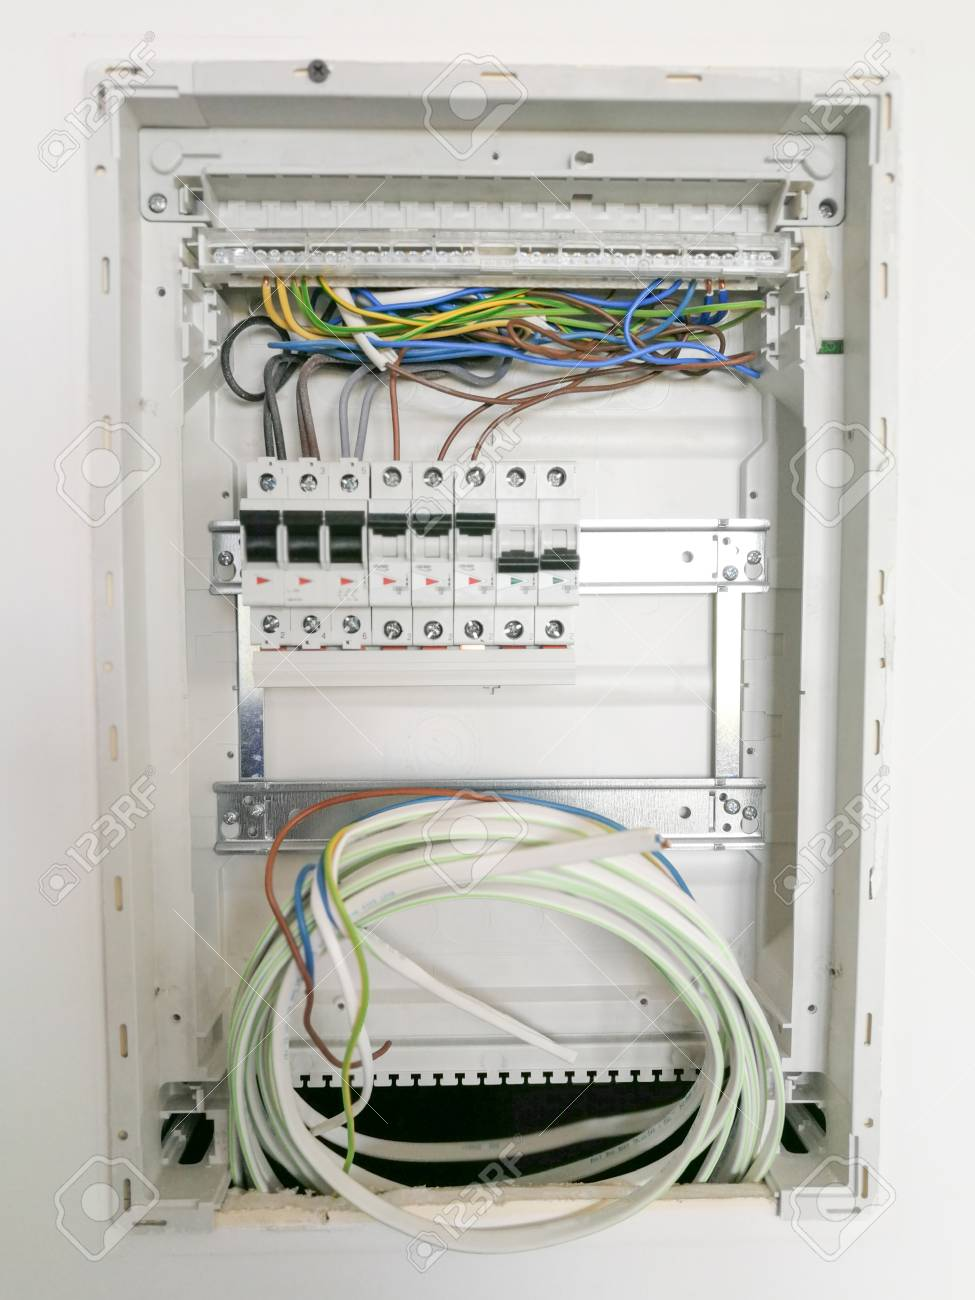 Electric safety switches and wiring inside electrical panel on wiring an electrical service panel, inside electrical plug, inside electrical controller, inside electrical box, inside electrical wire, inside electrical transformer,